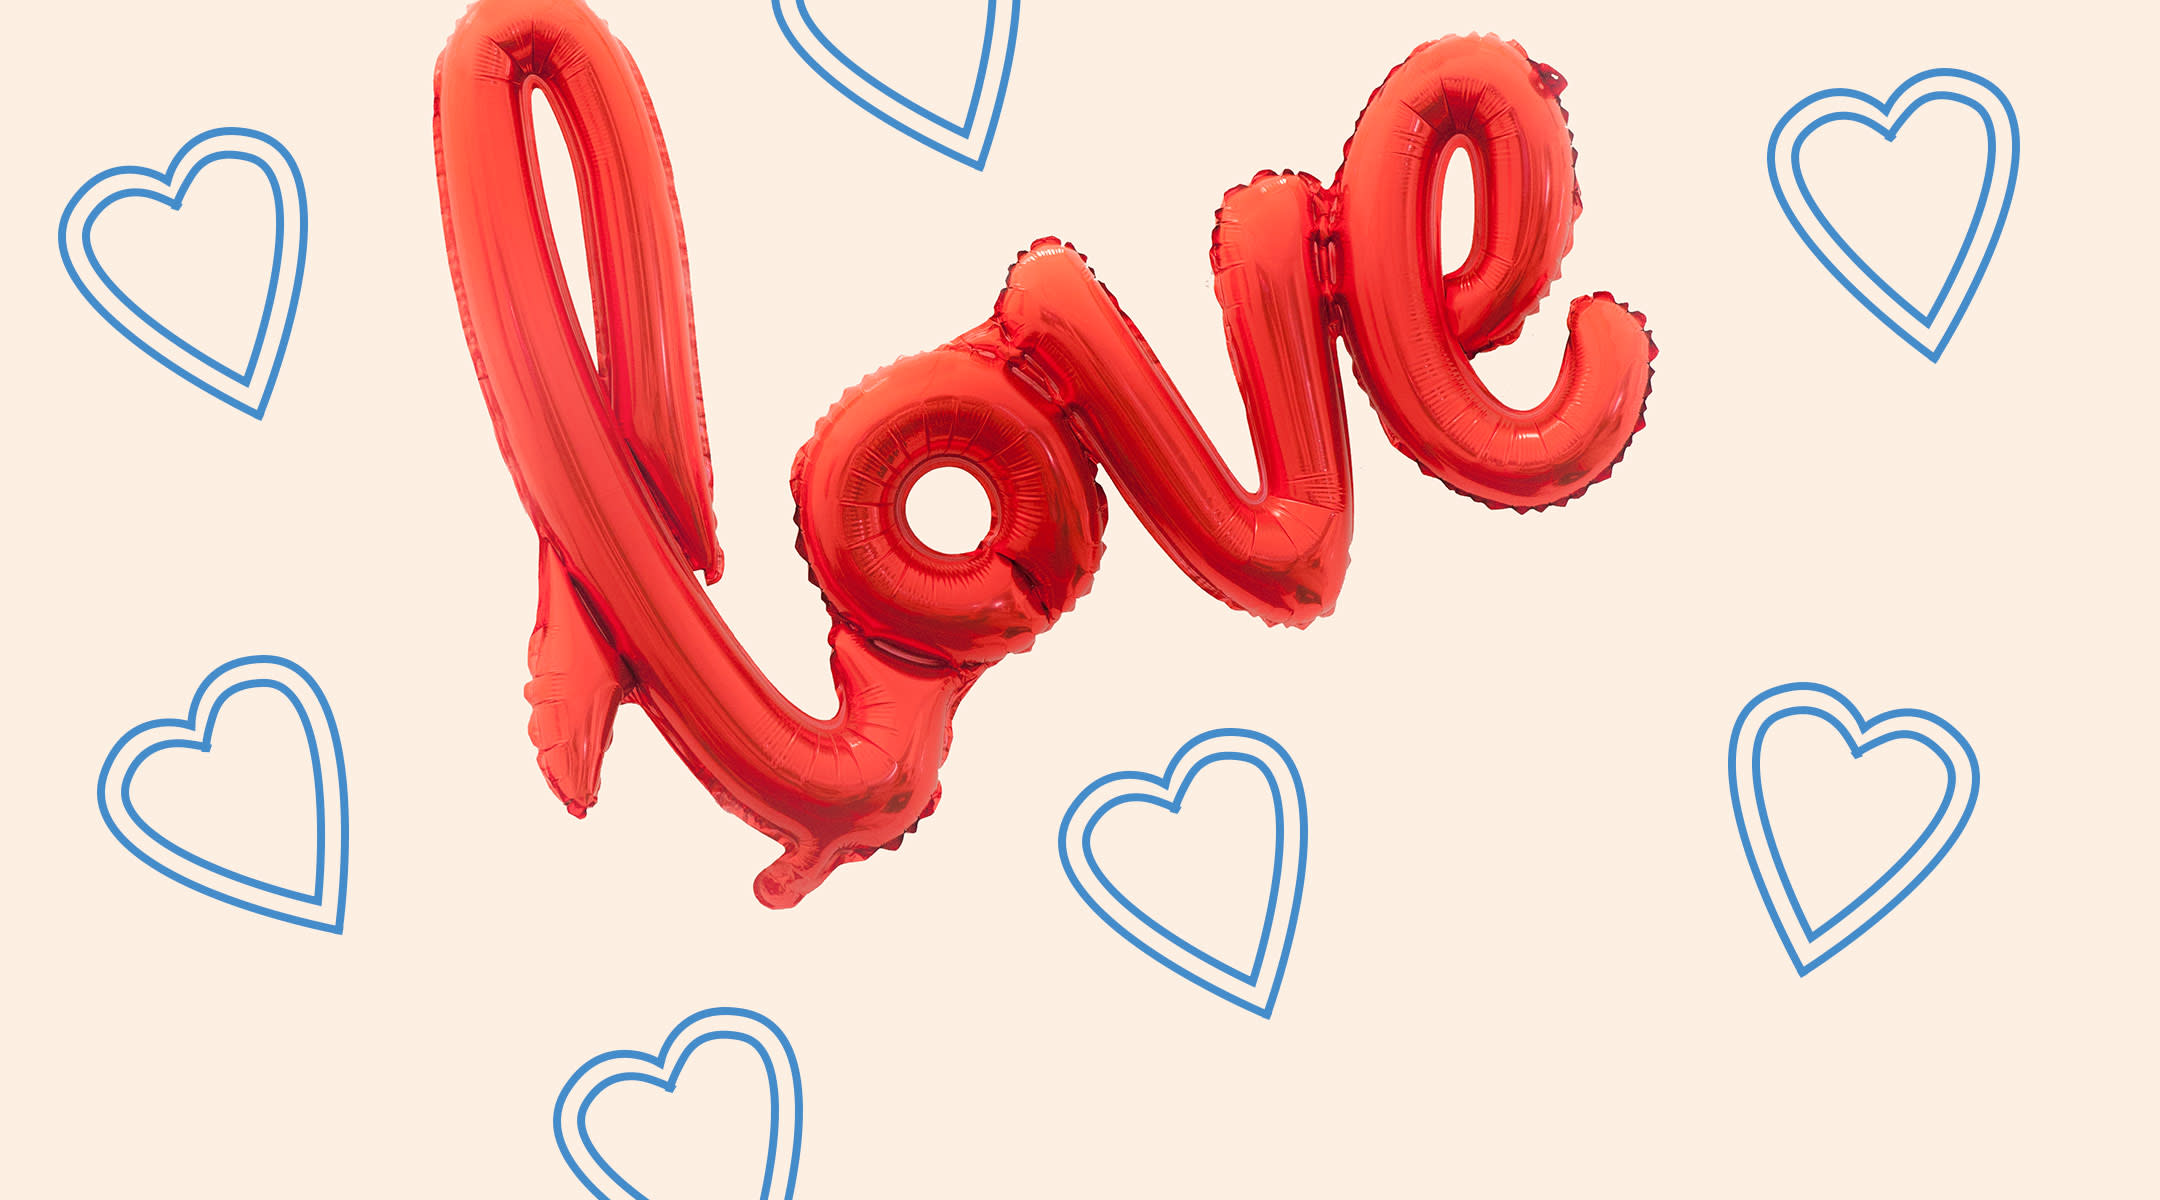 red balloon letters that spell out love with collage of blue hearts